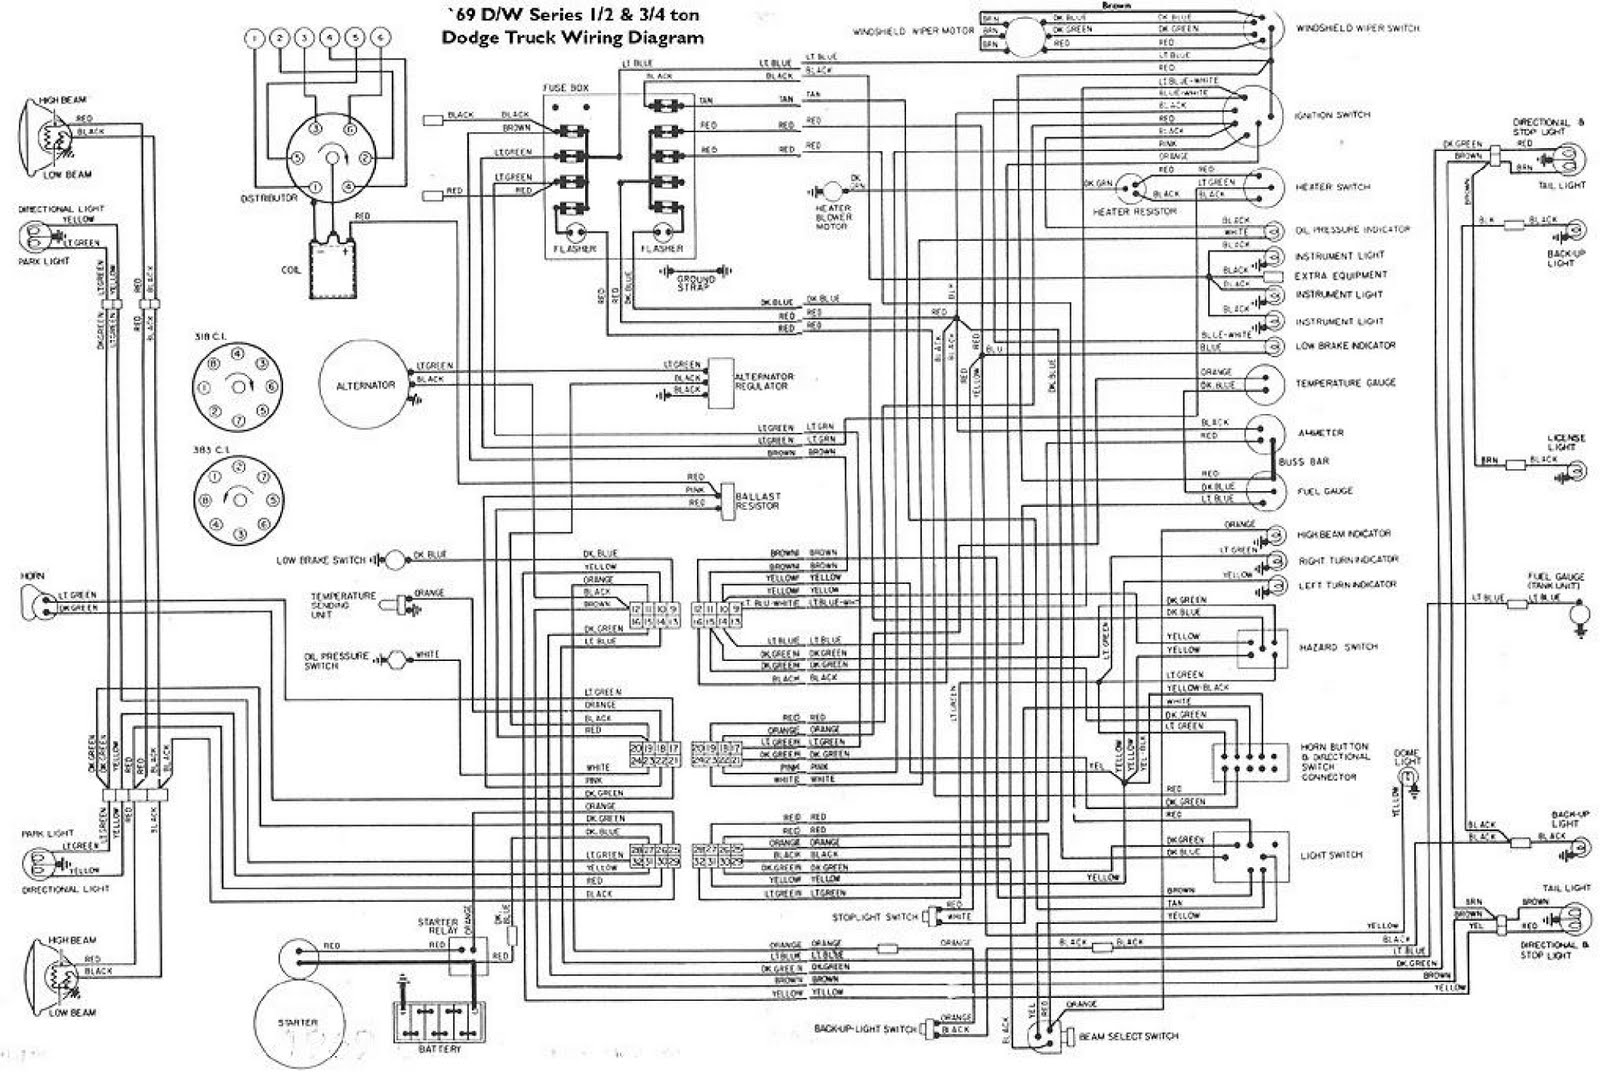 1975 chevy truck wiring diagram 1969's d/w series dodge truck wiring diagram | schematic ... 1975 dodge truck wiring diagrams